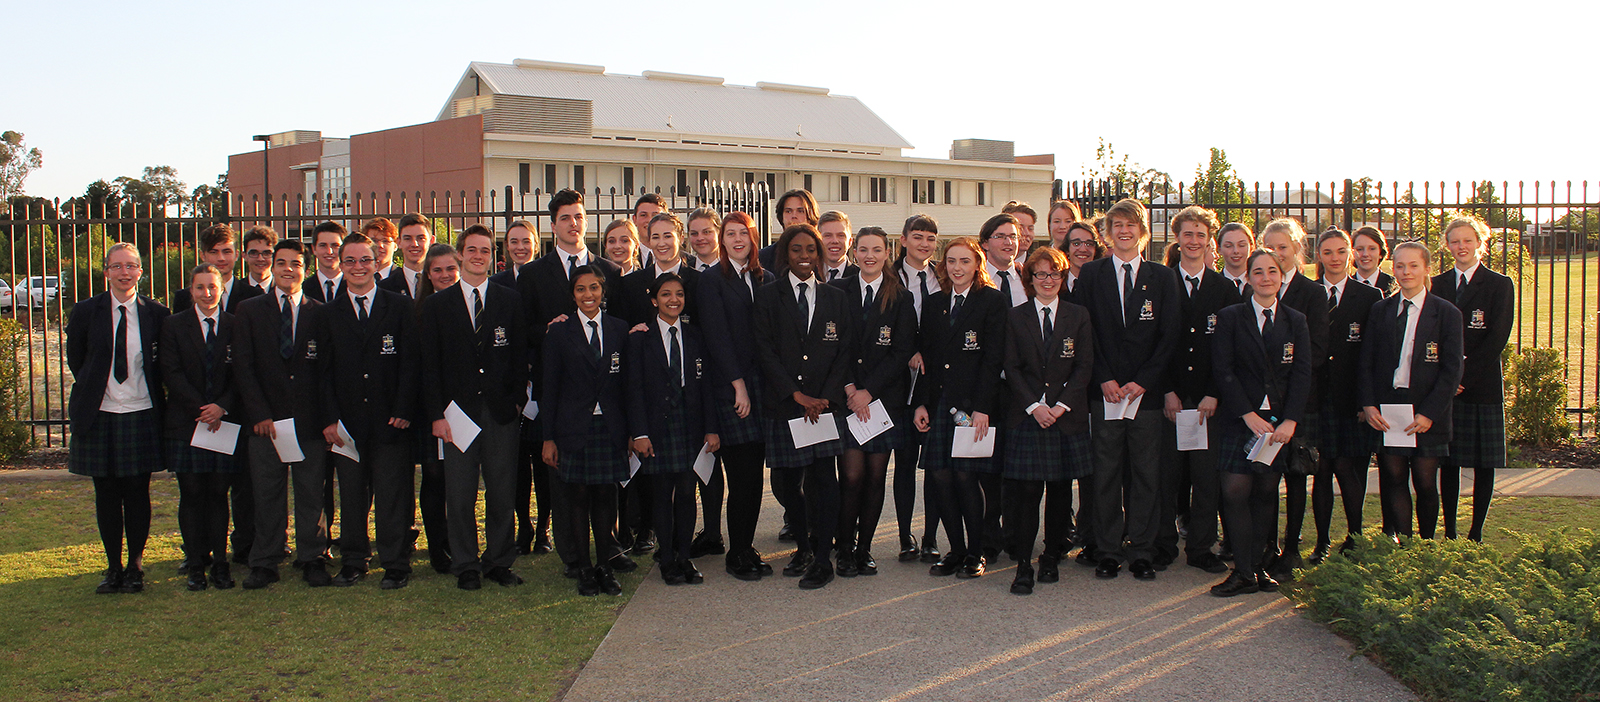 Year 12 students on Valedictory Day 2015